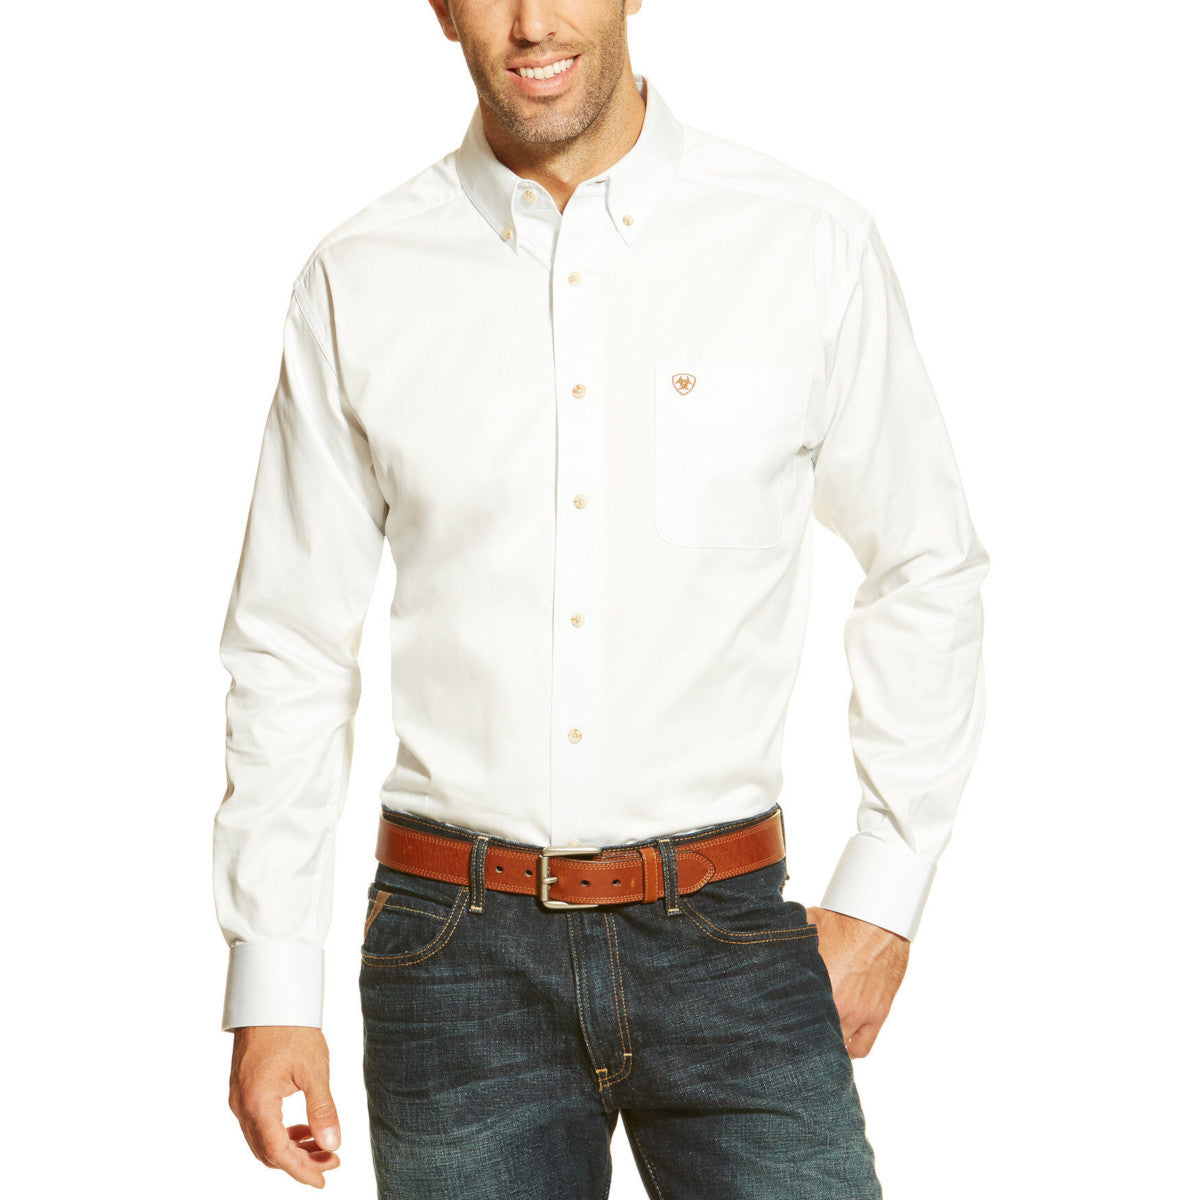 Ariat Men's White Solid Twill Long Sleeve Western Shirt